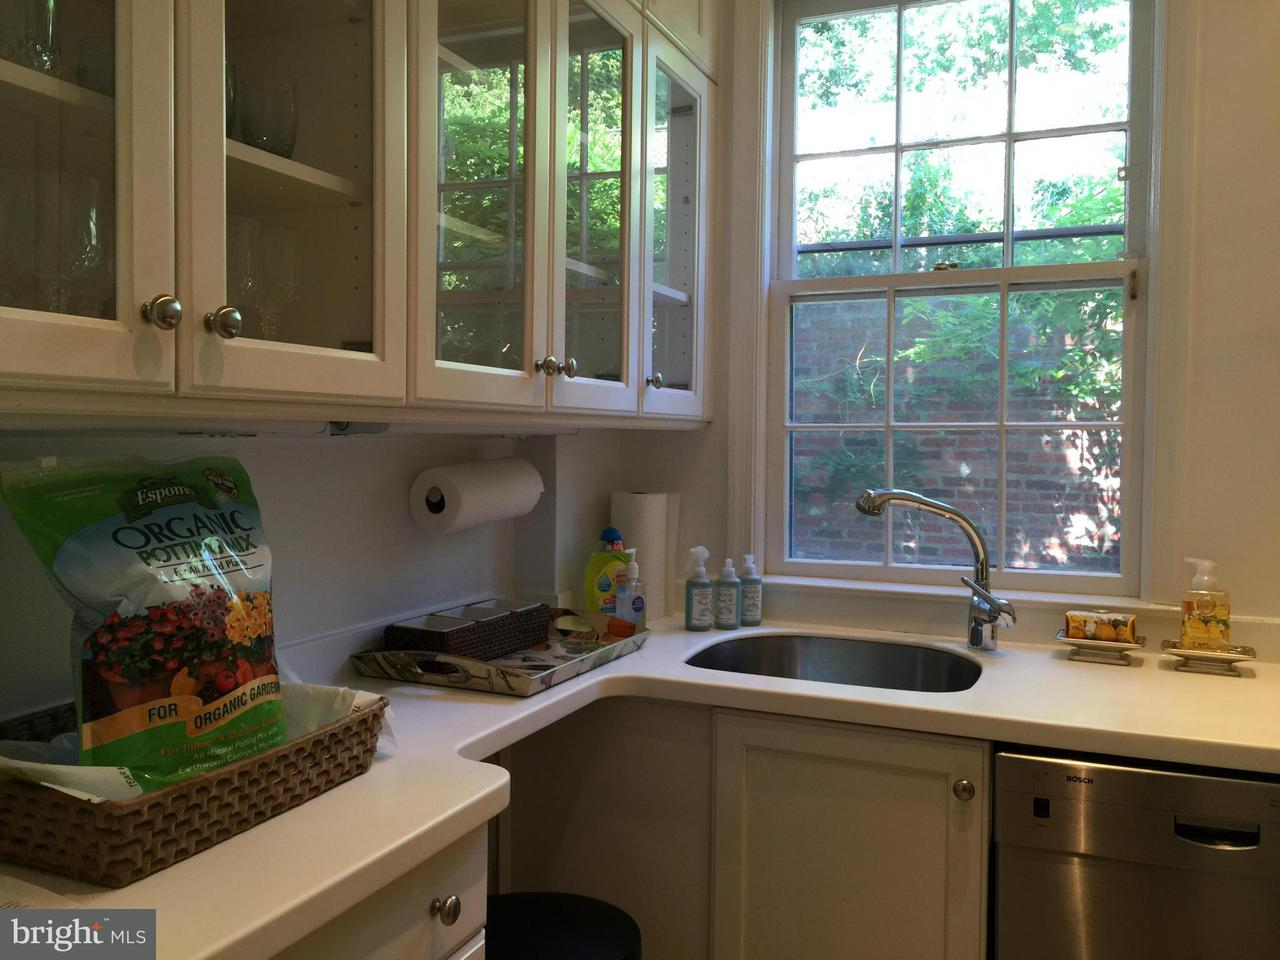 Additional photo for property listing at 3421 O St NW  Washington, District Of Columbia 20007 United States